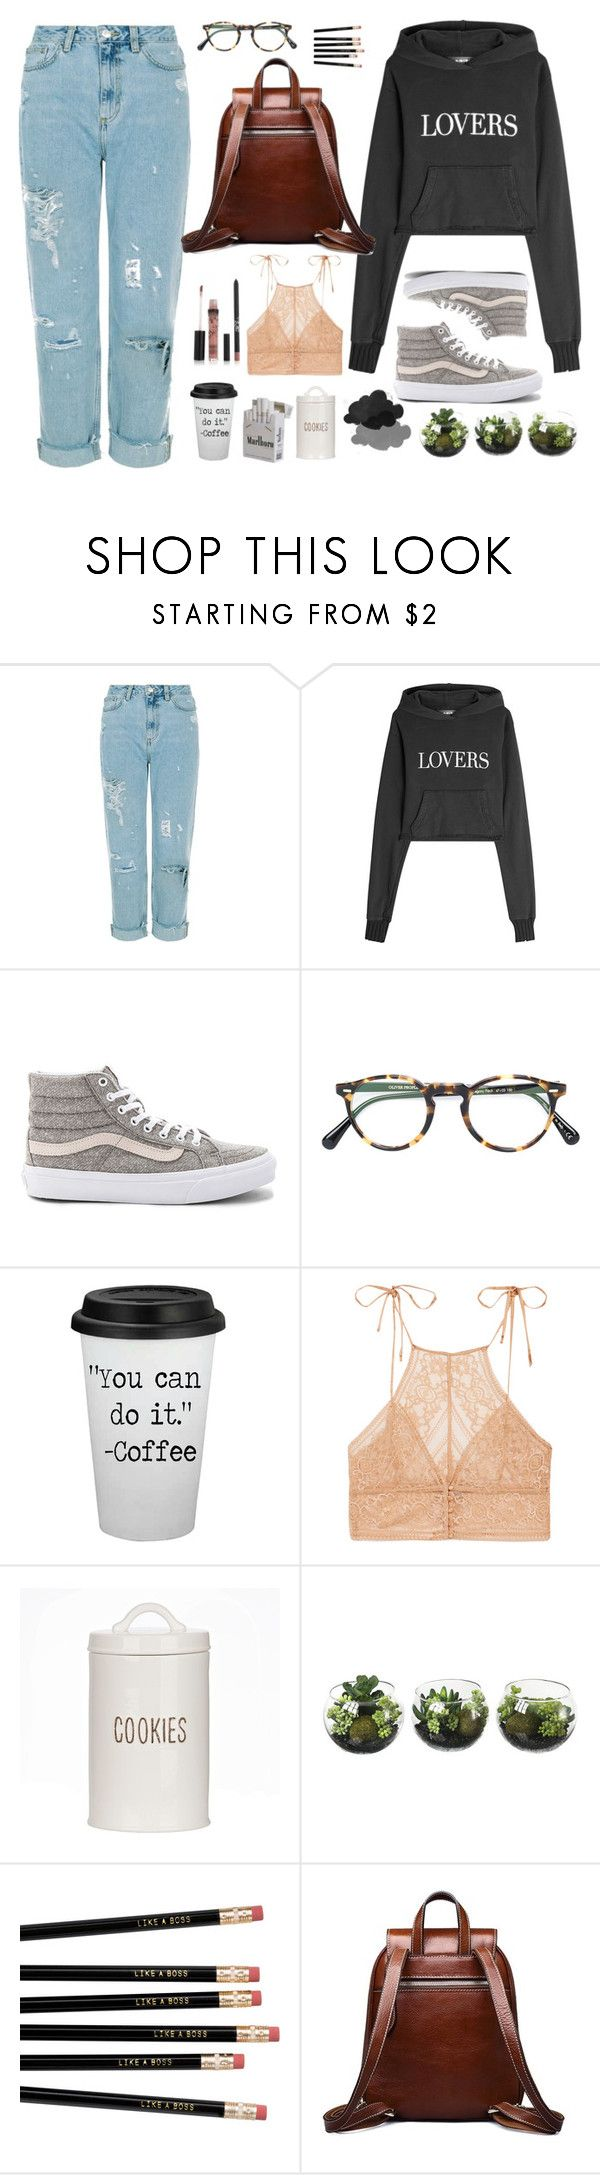 """""""Nothing but troubles"""" by cecililaria ❤ liked on Polyvore featuring AMIRI, Vans, Oliver Peoples and STELLA McCARTNEY"""